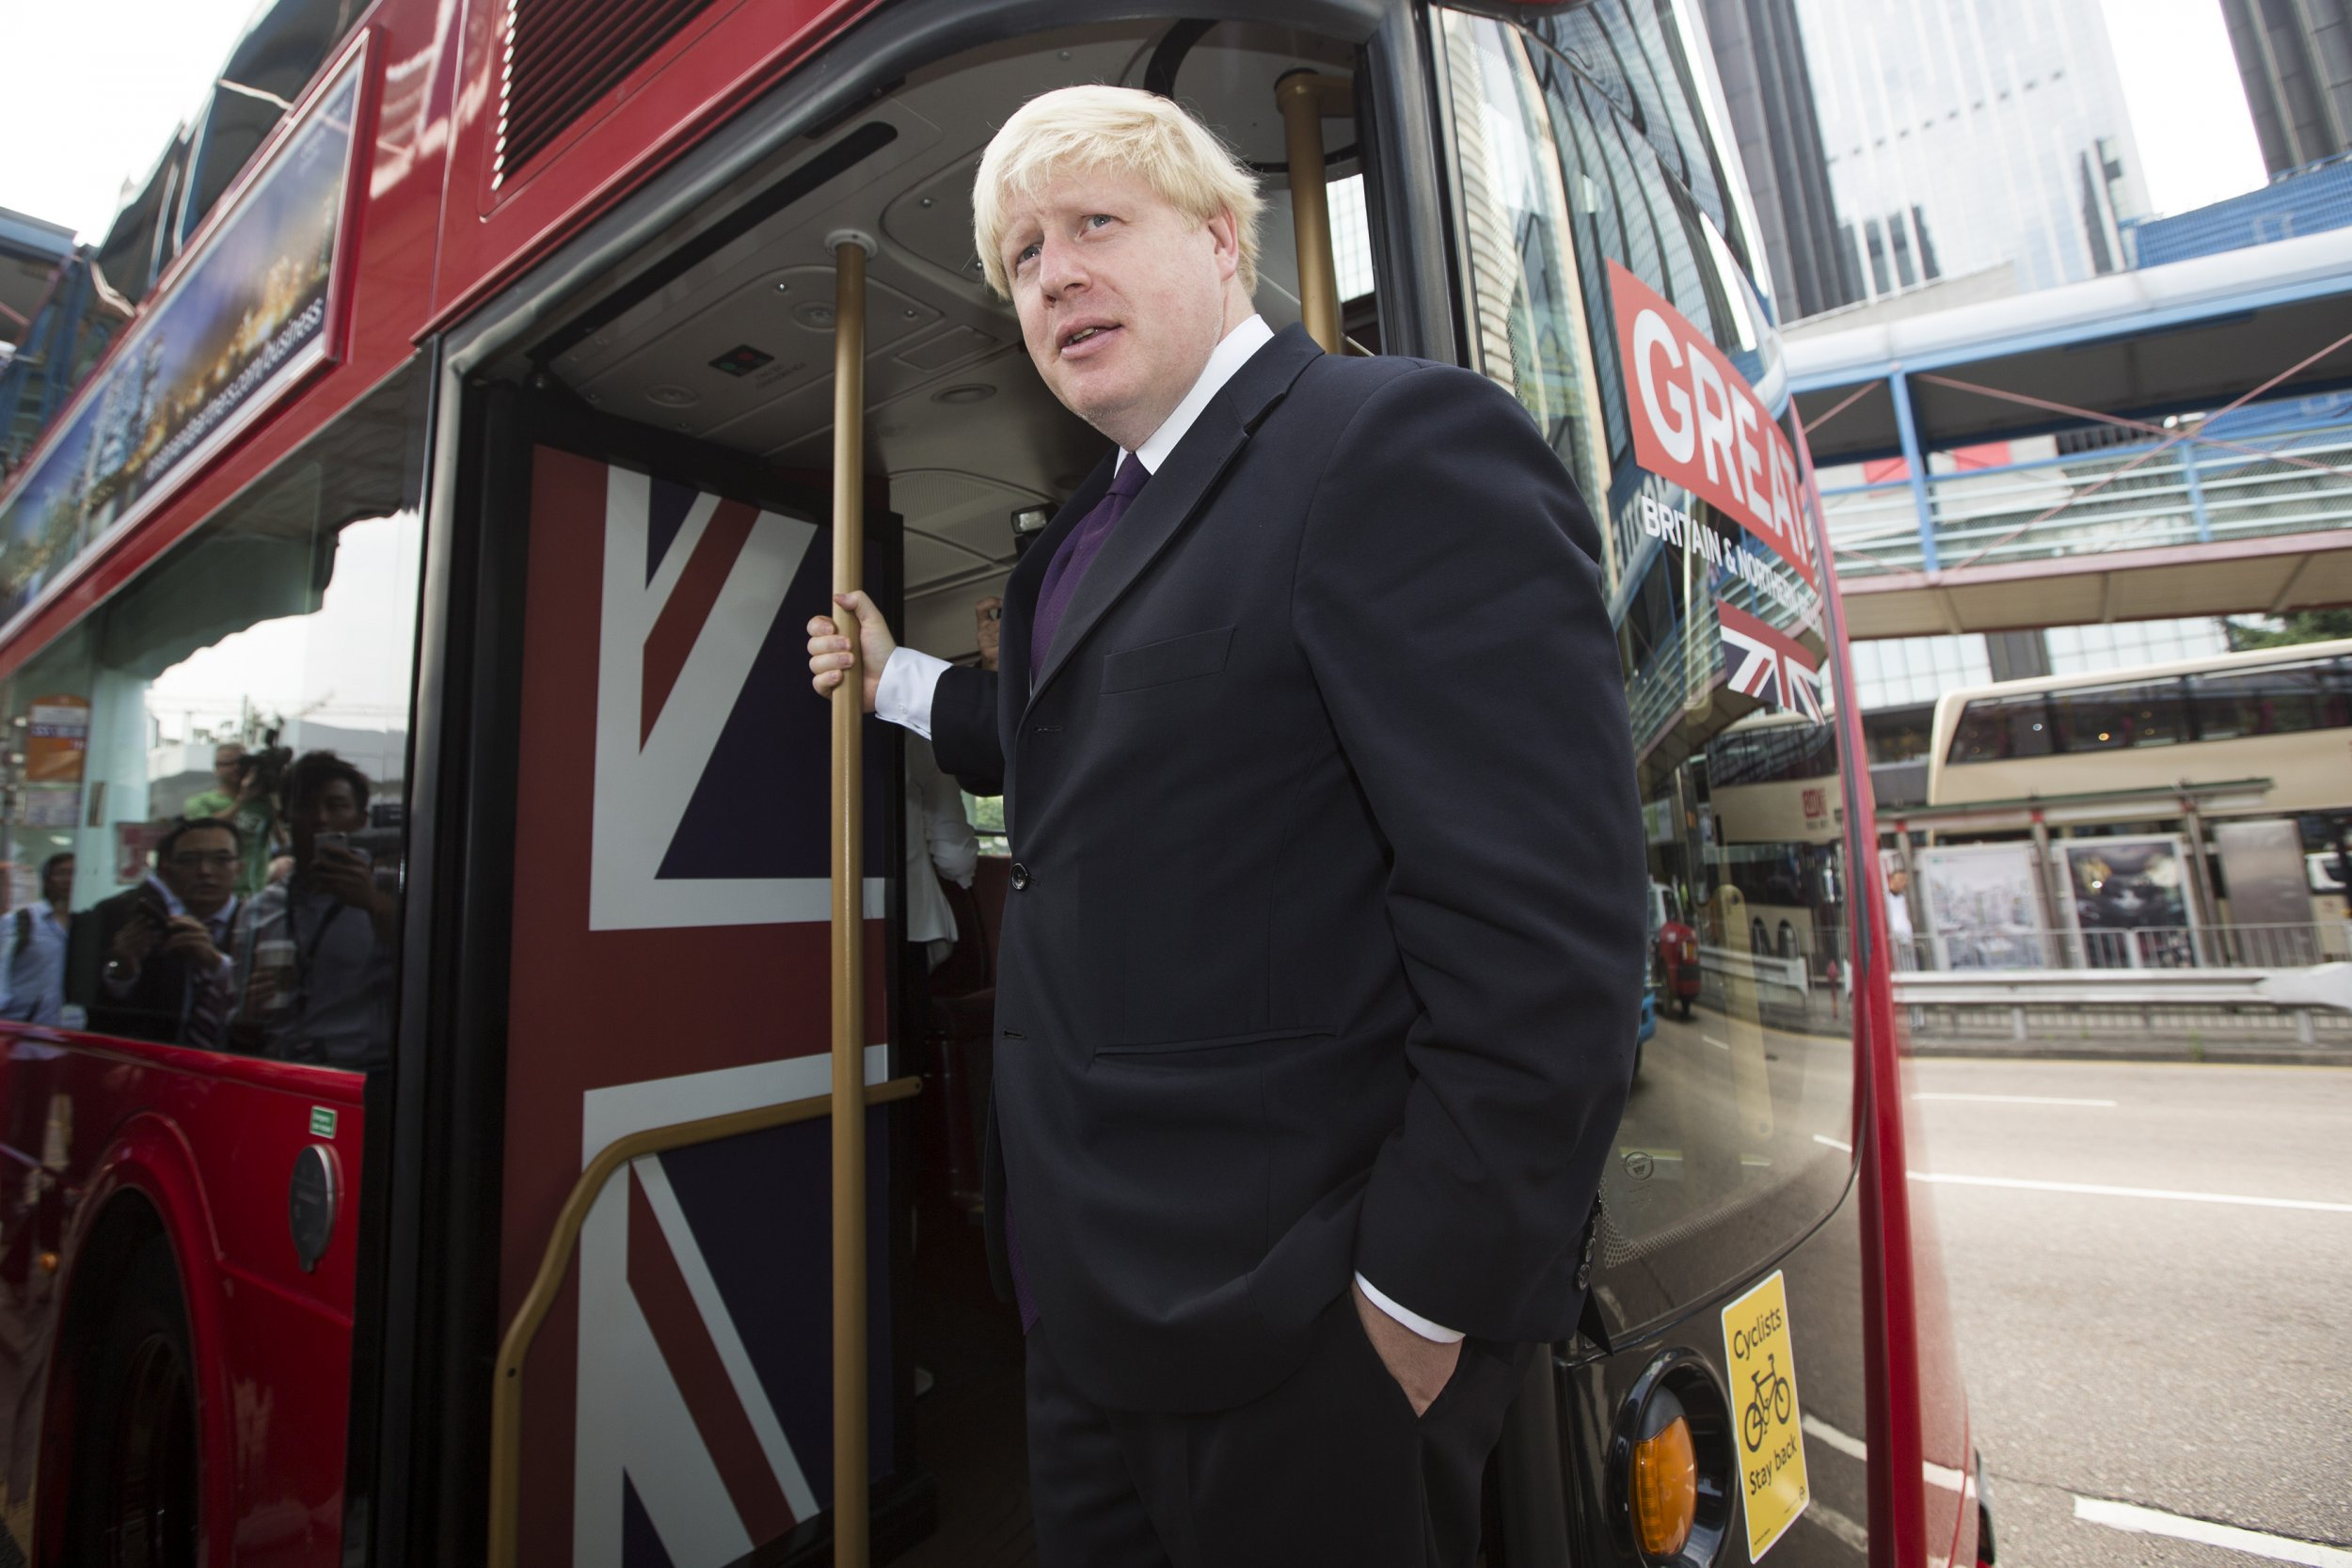 Boris Johnson, London's mayor